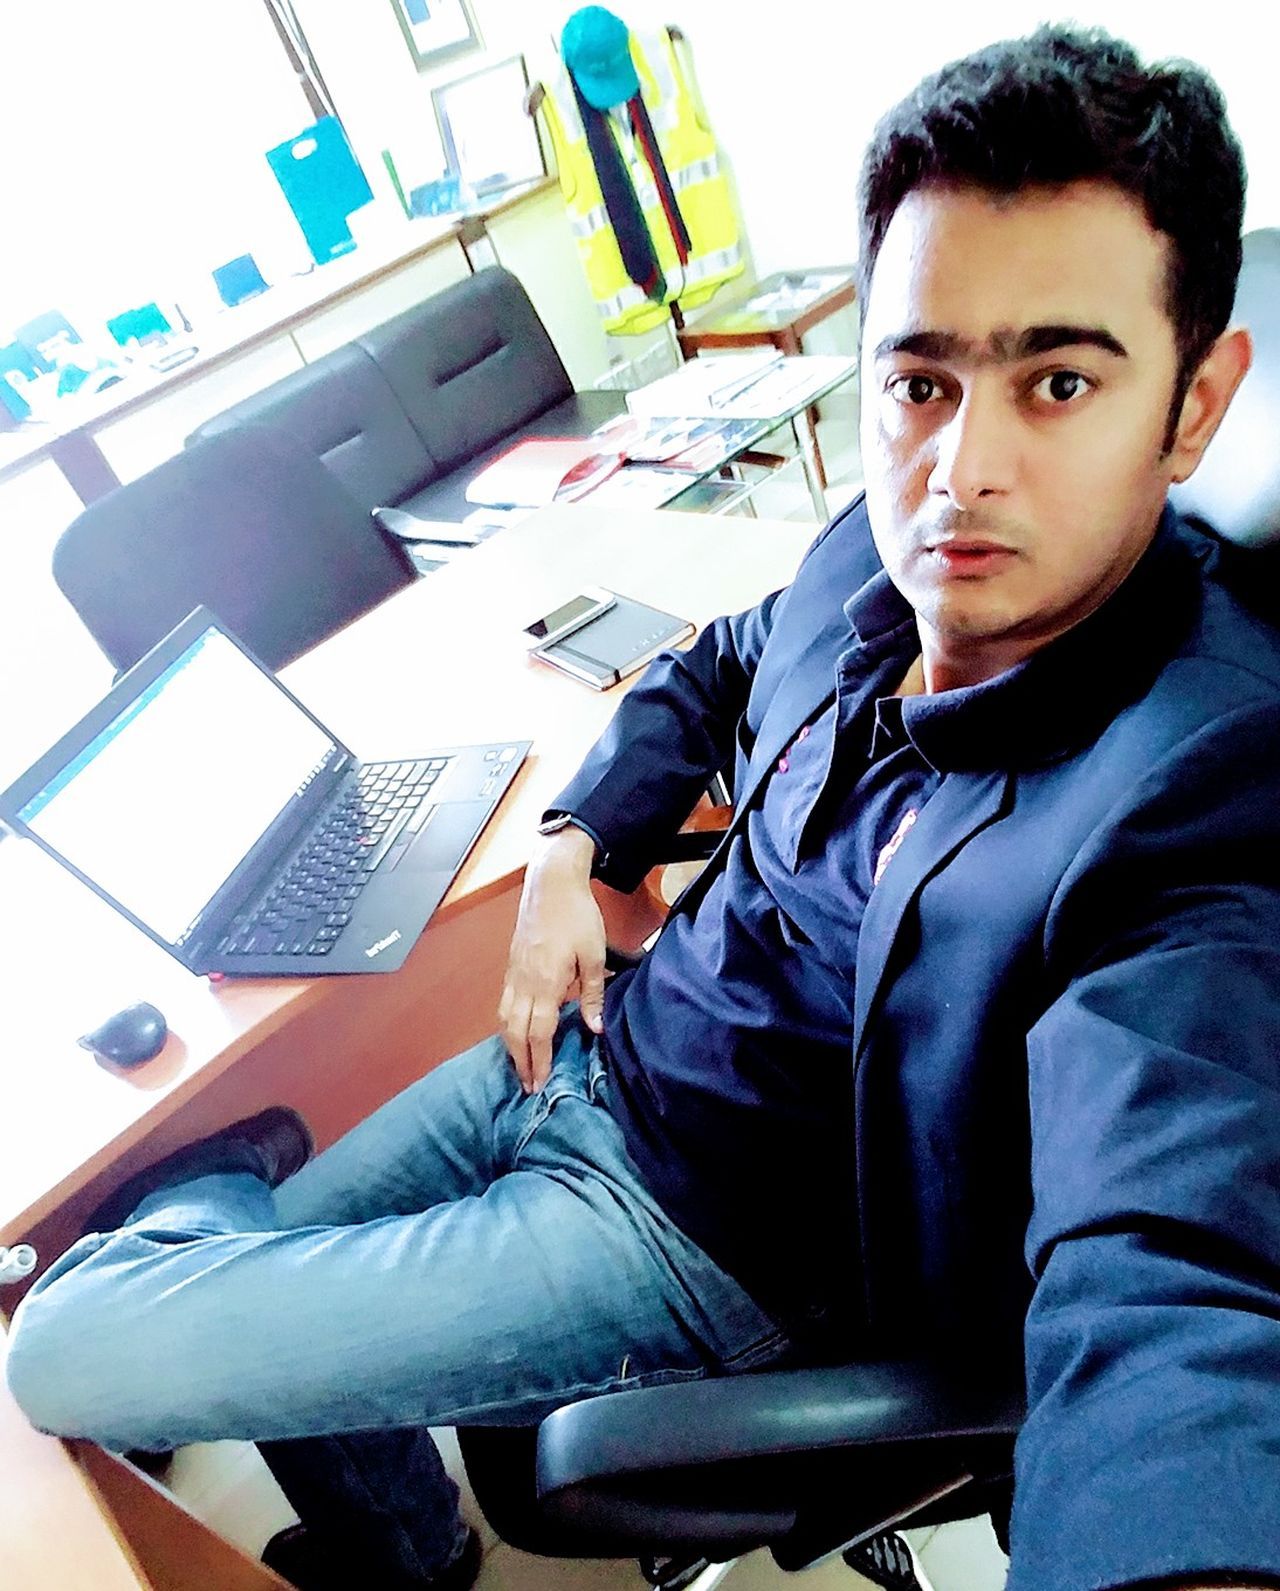 Business Men One Person People Adult Young Adult Businessman Adults Only One Man Only Me Hello World That's Me HERO Today's Hot Look Pakistan Rathod Check This Out Karachi Man Hi! Actor Glamour Portrait Casual Clothing Well-dressed